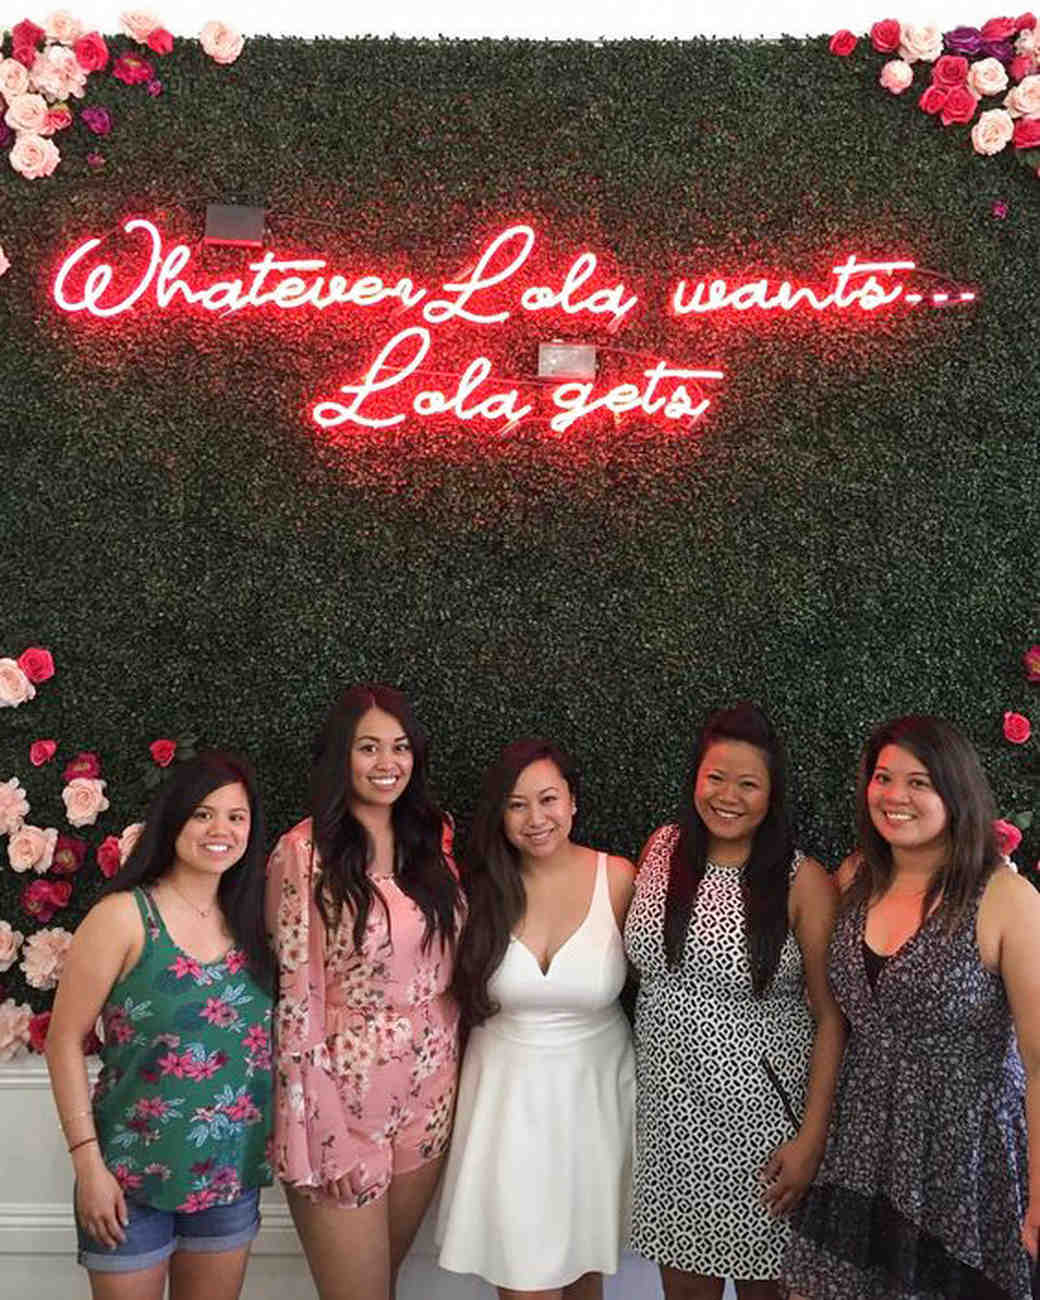 bridal shower ideas floral back drop neon sign